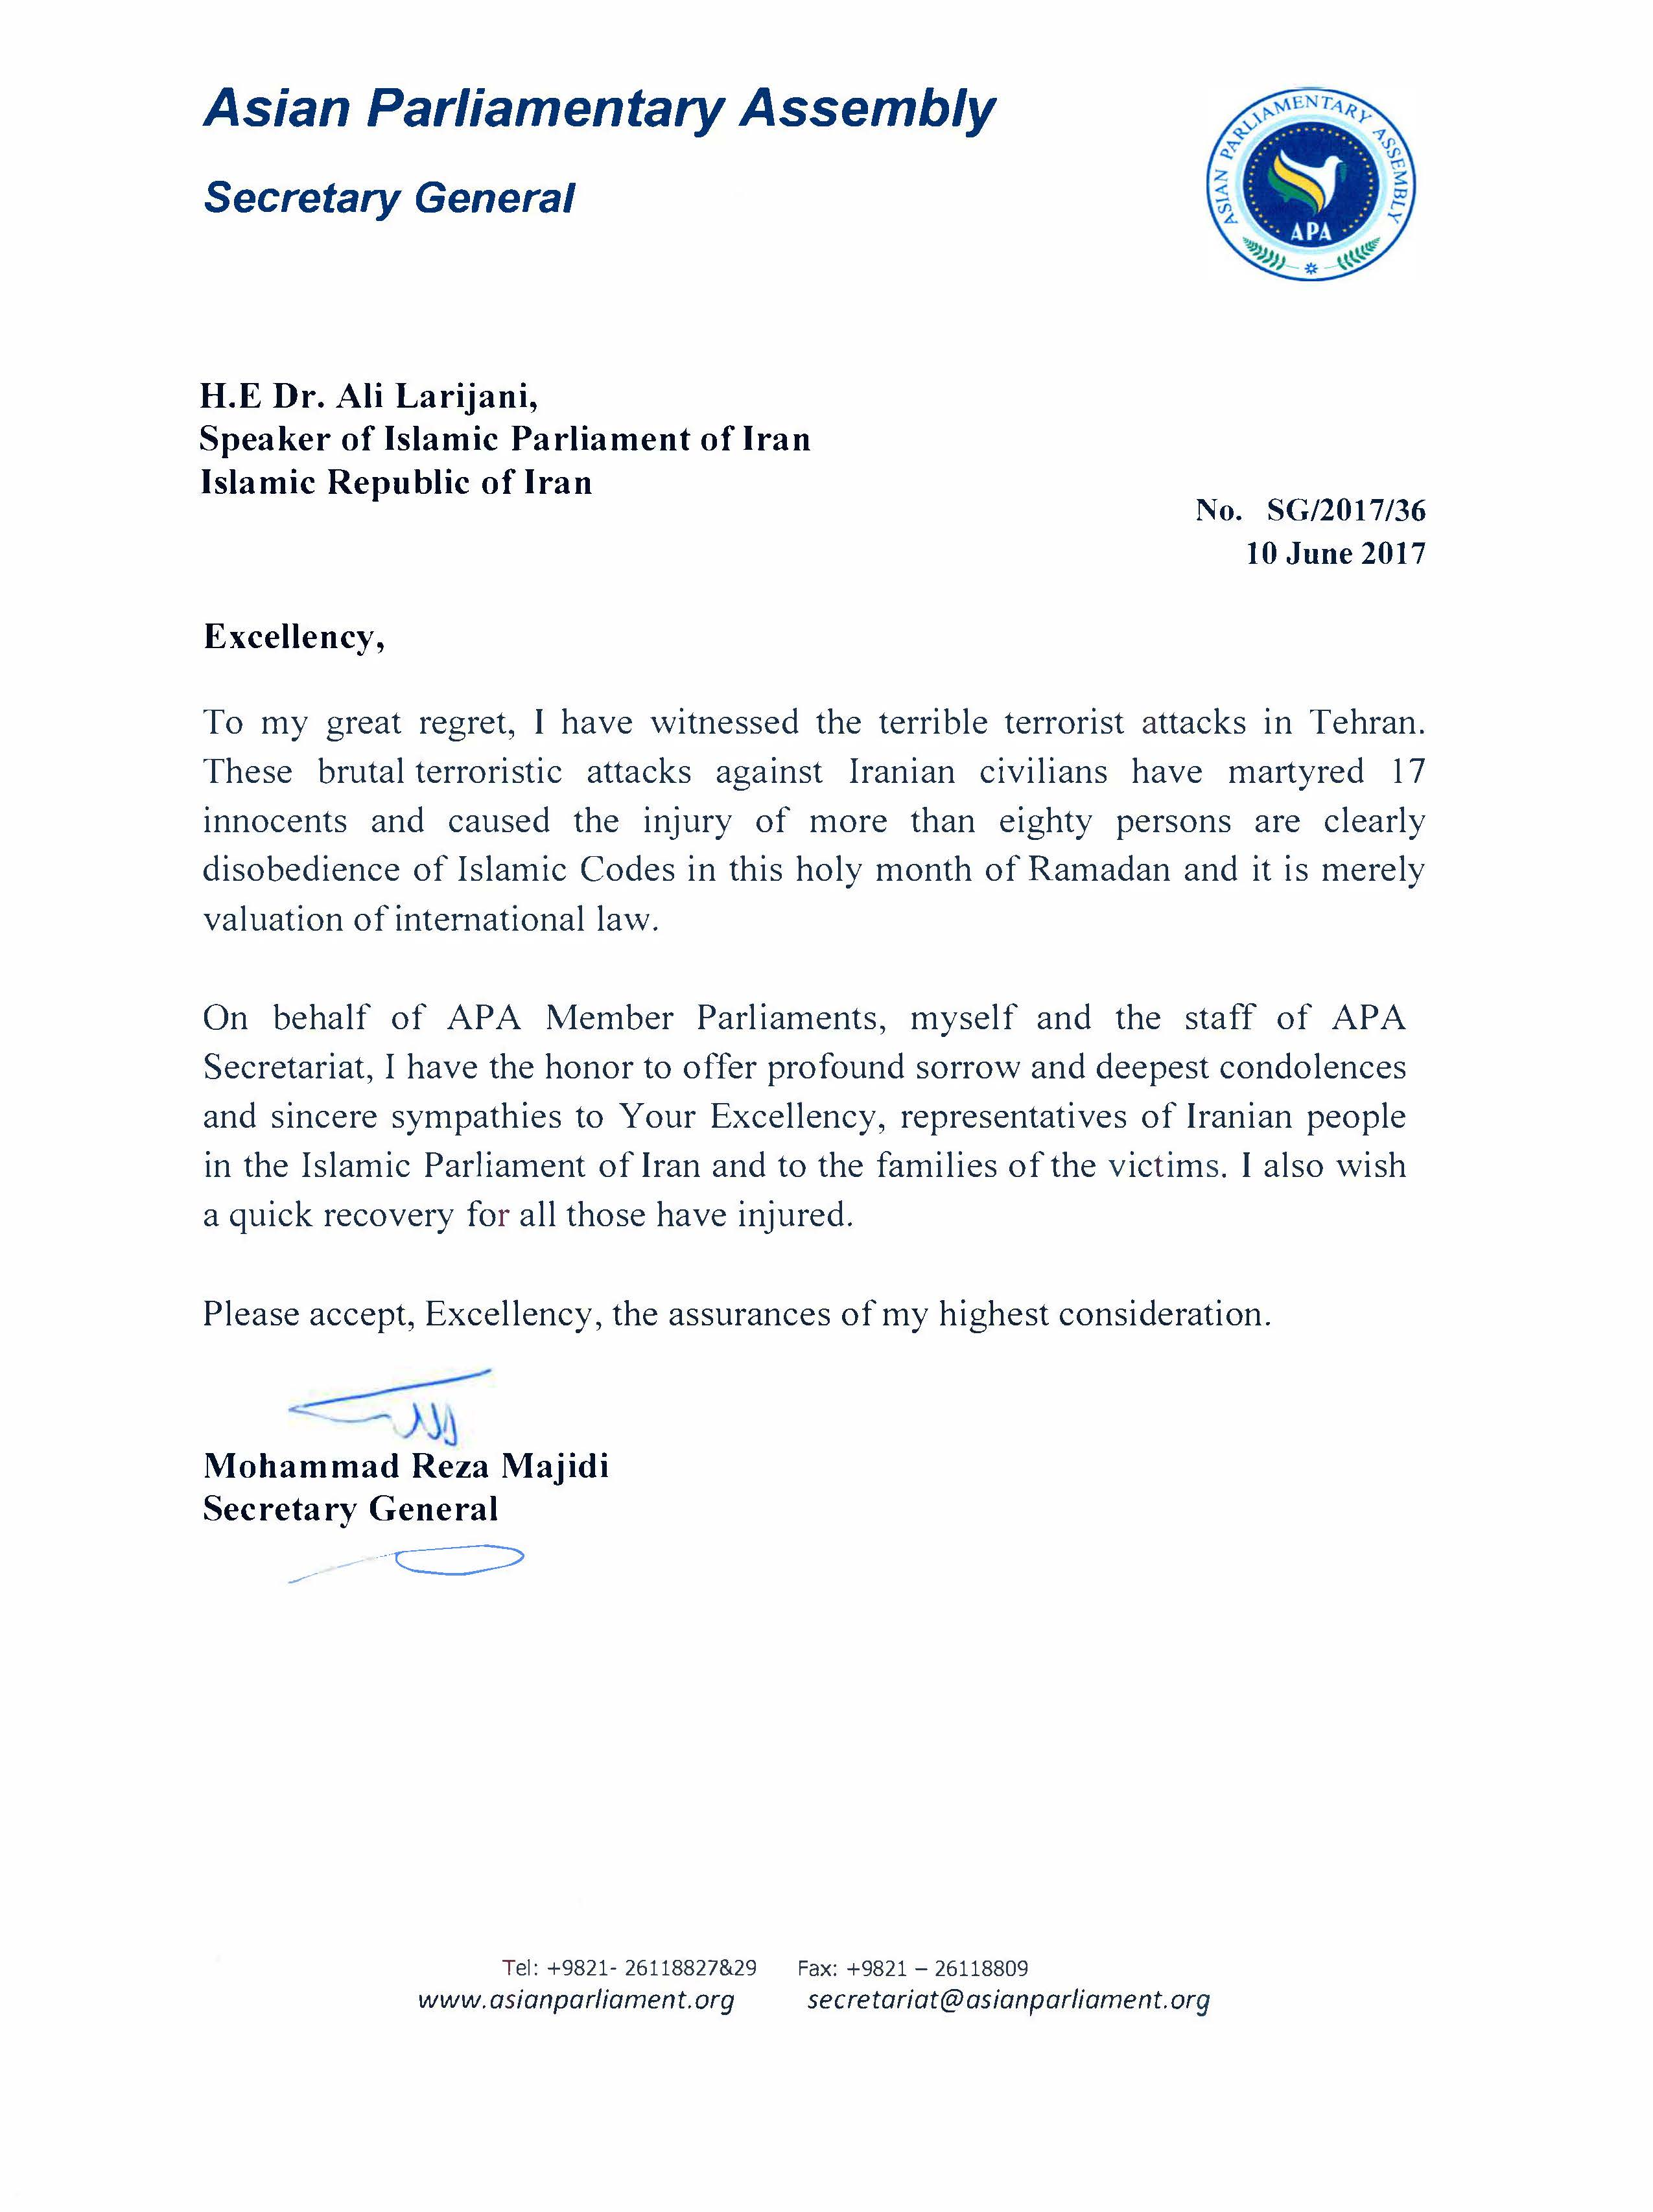 The Message of condolence by APA Secretary General